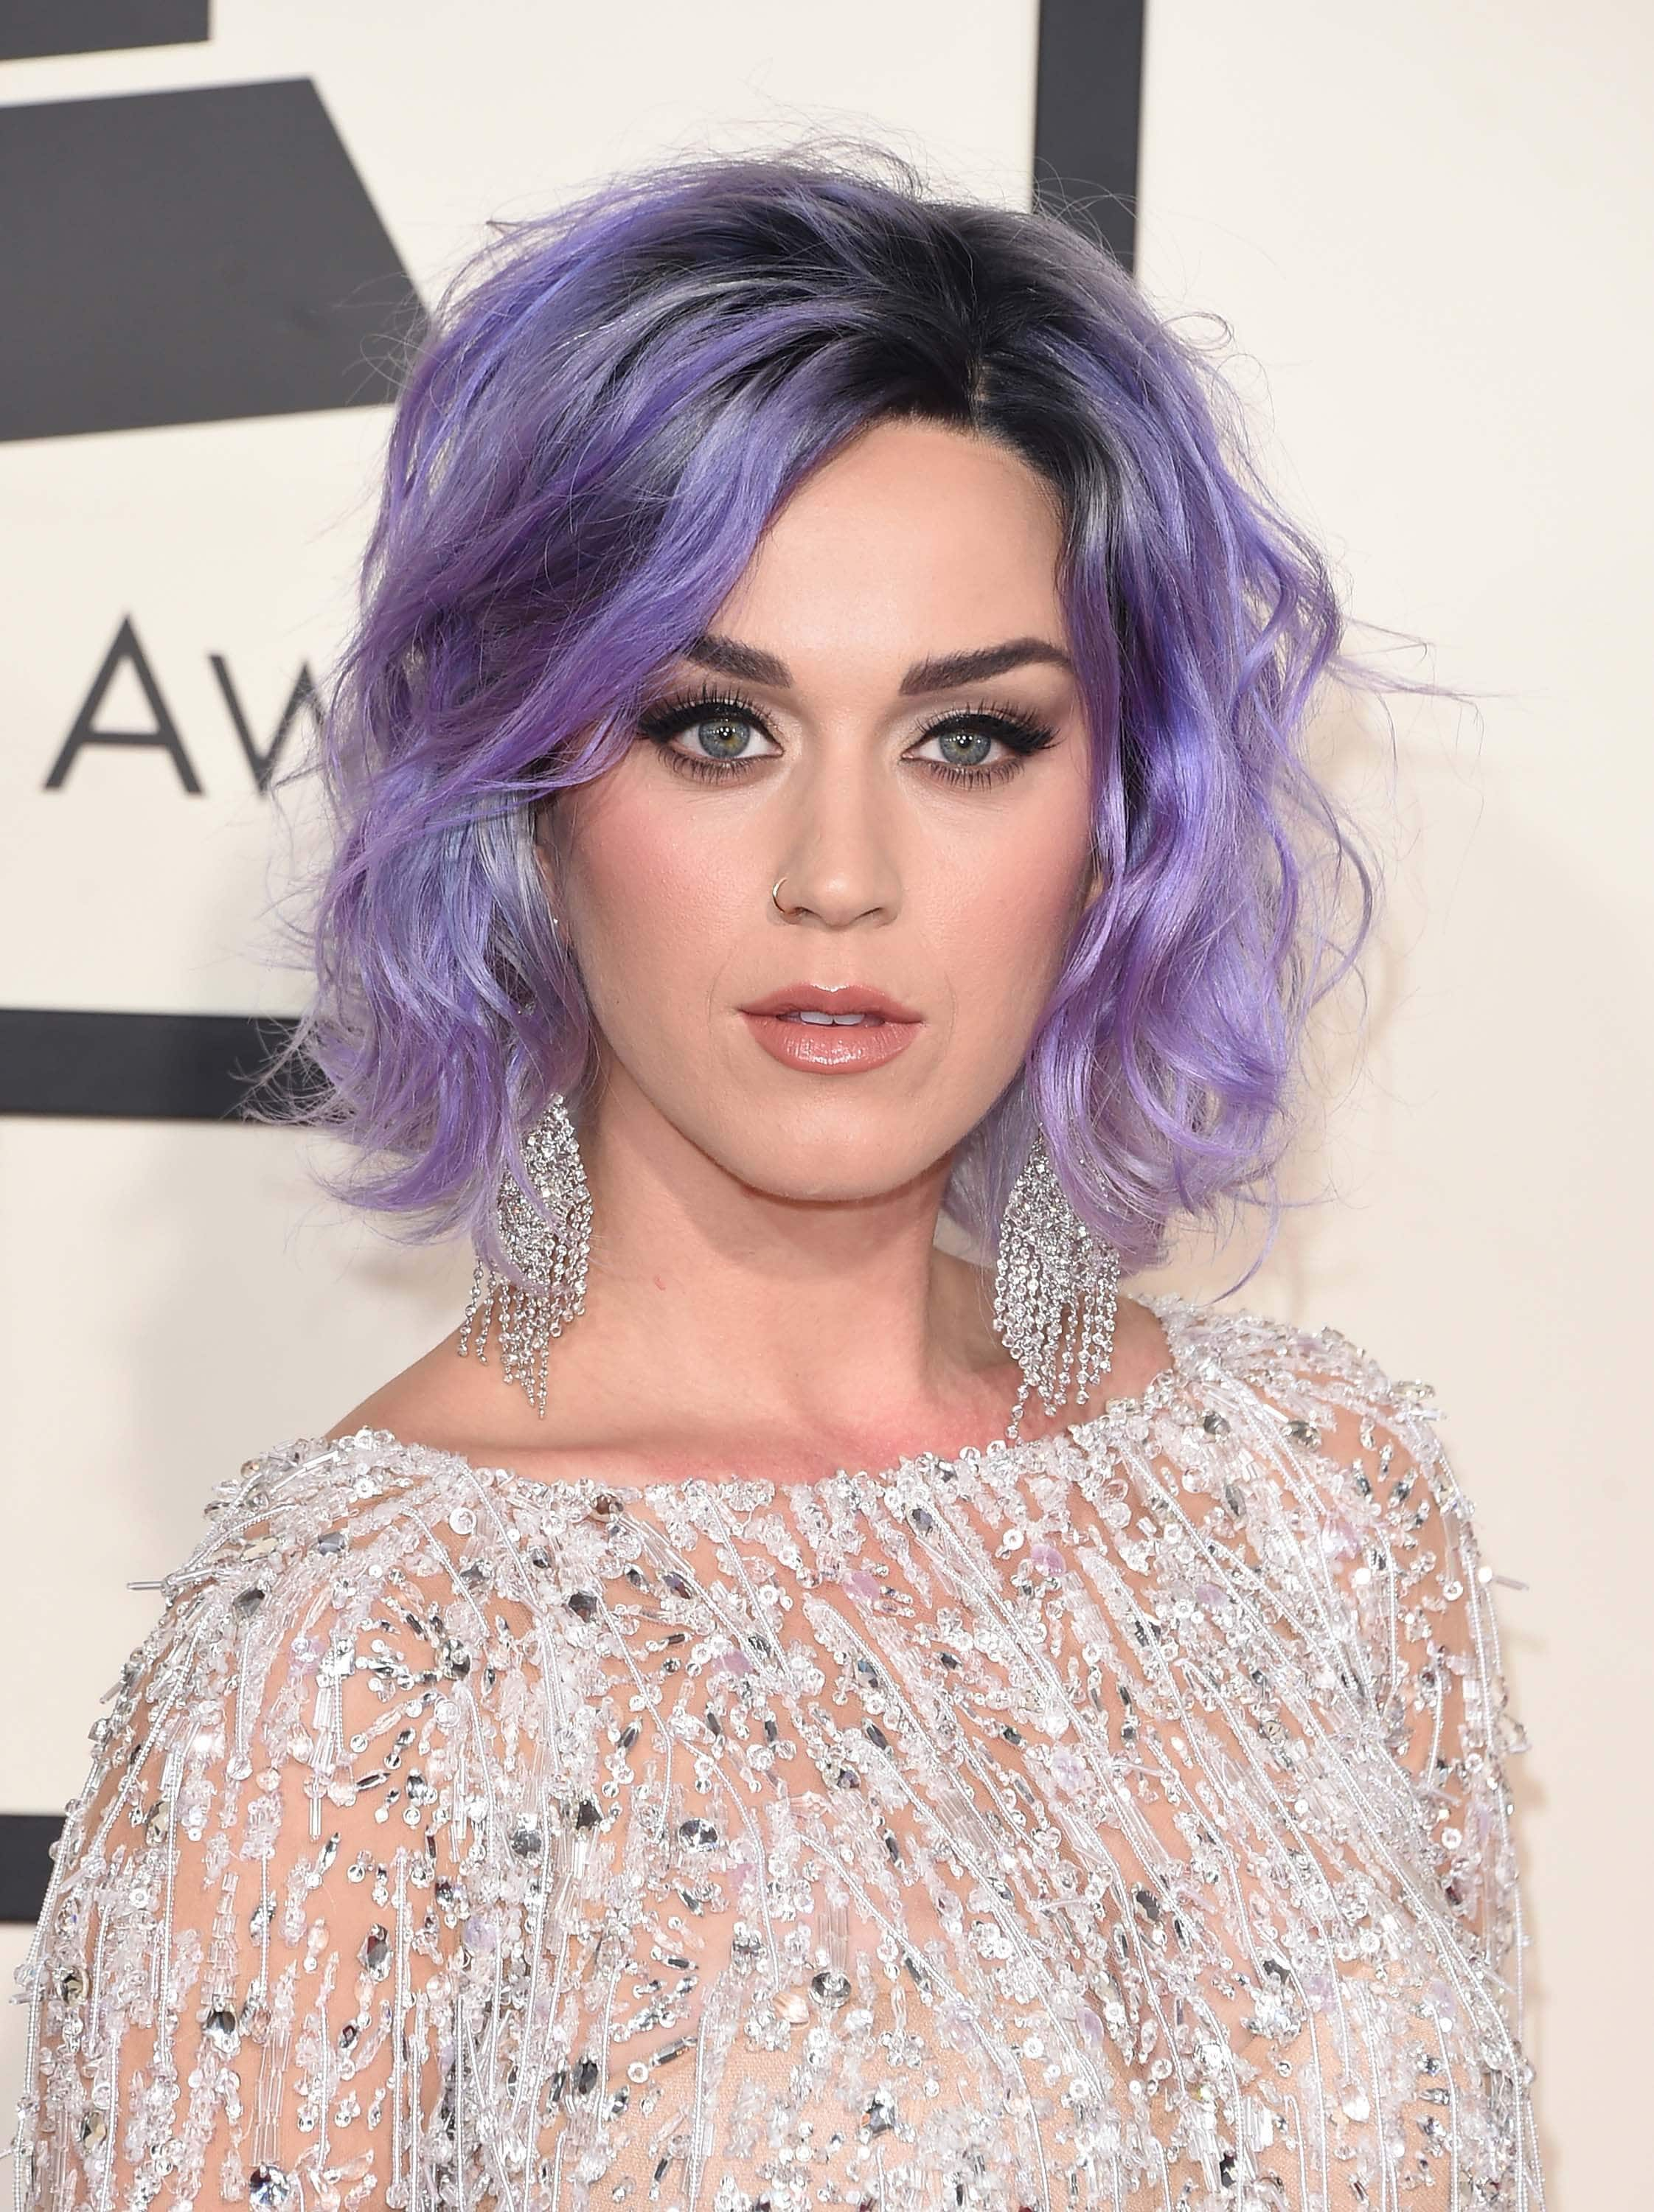 Purple Hair 15 Pretty Looks That Will Make You Want To Dye Your Hair